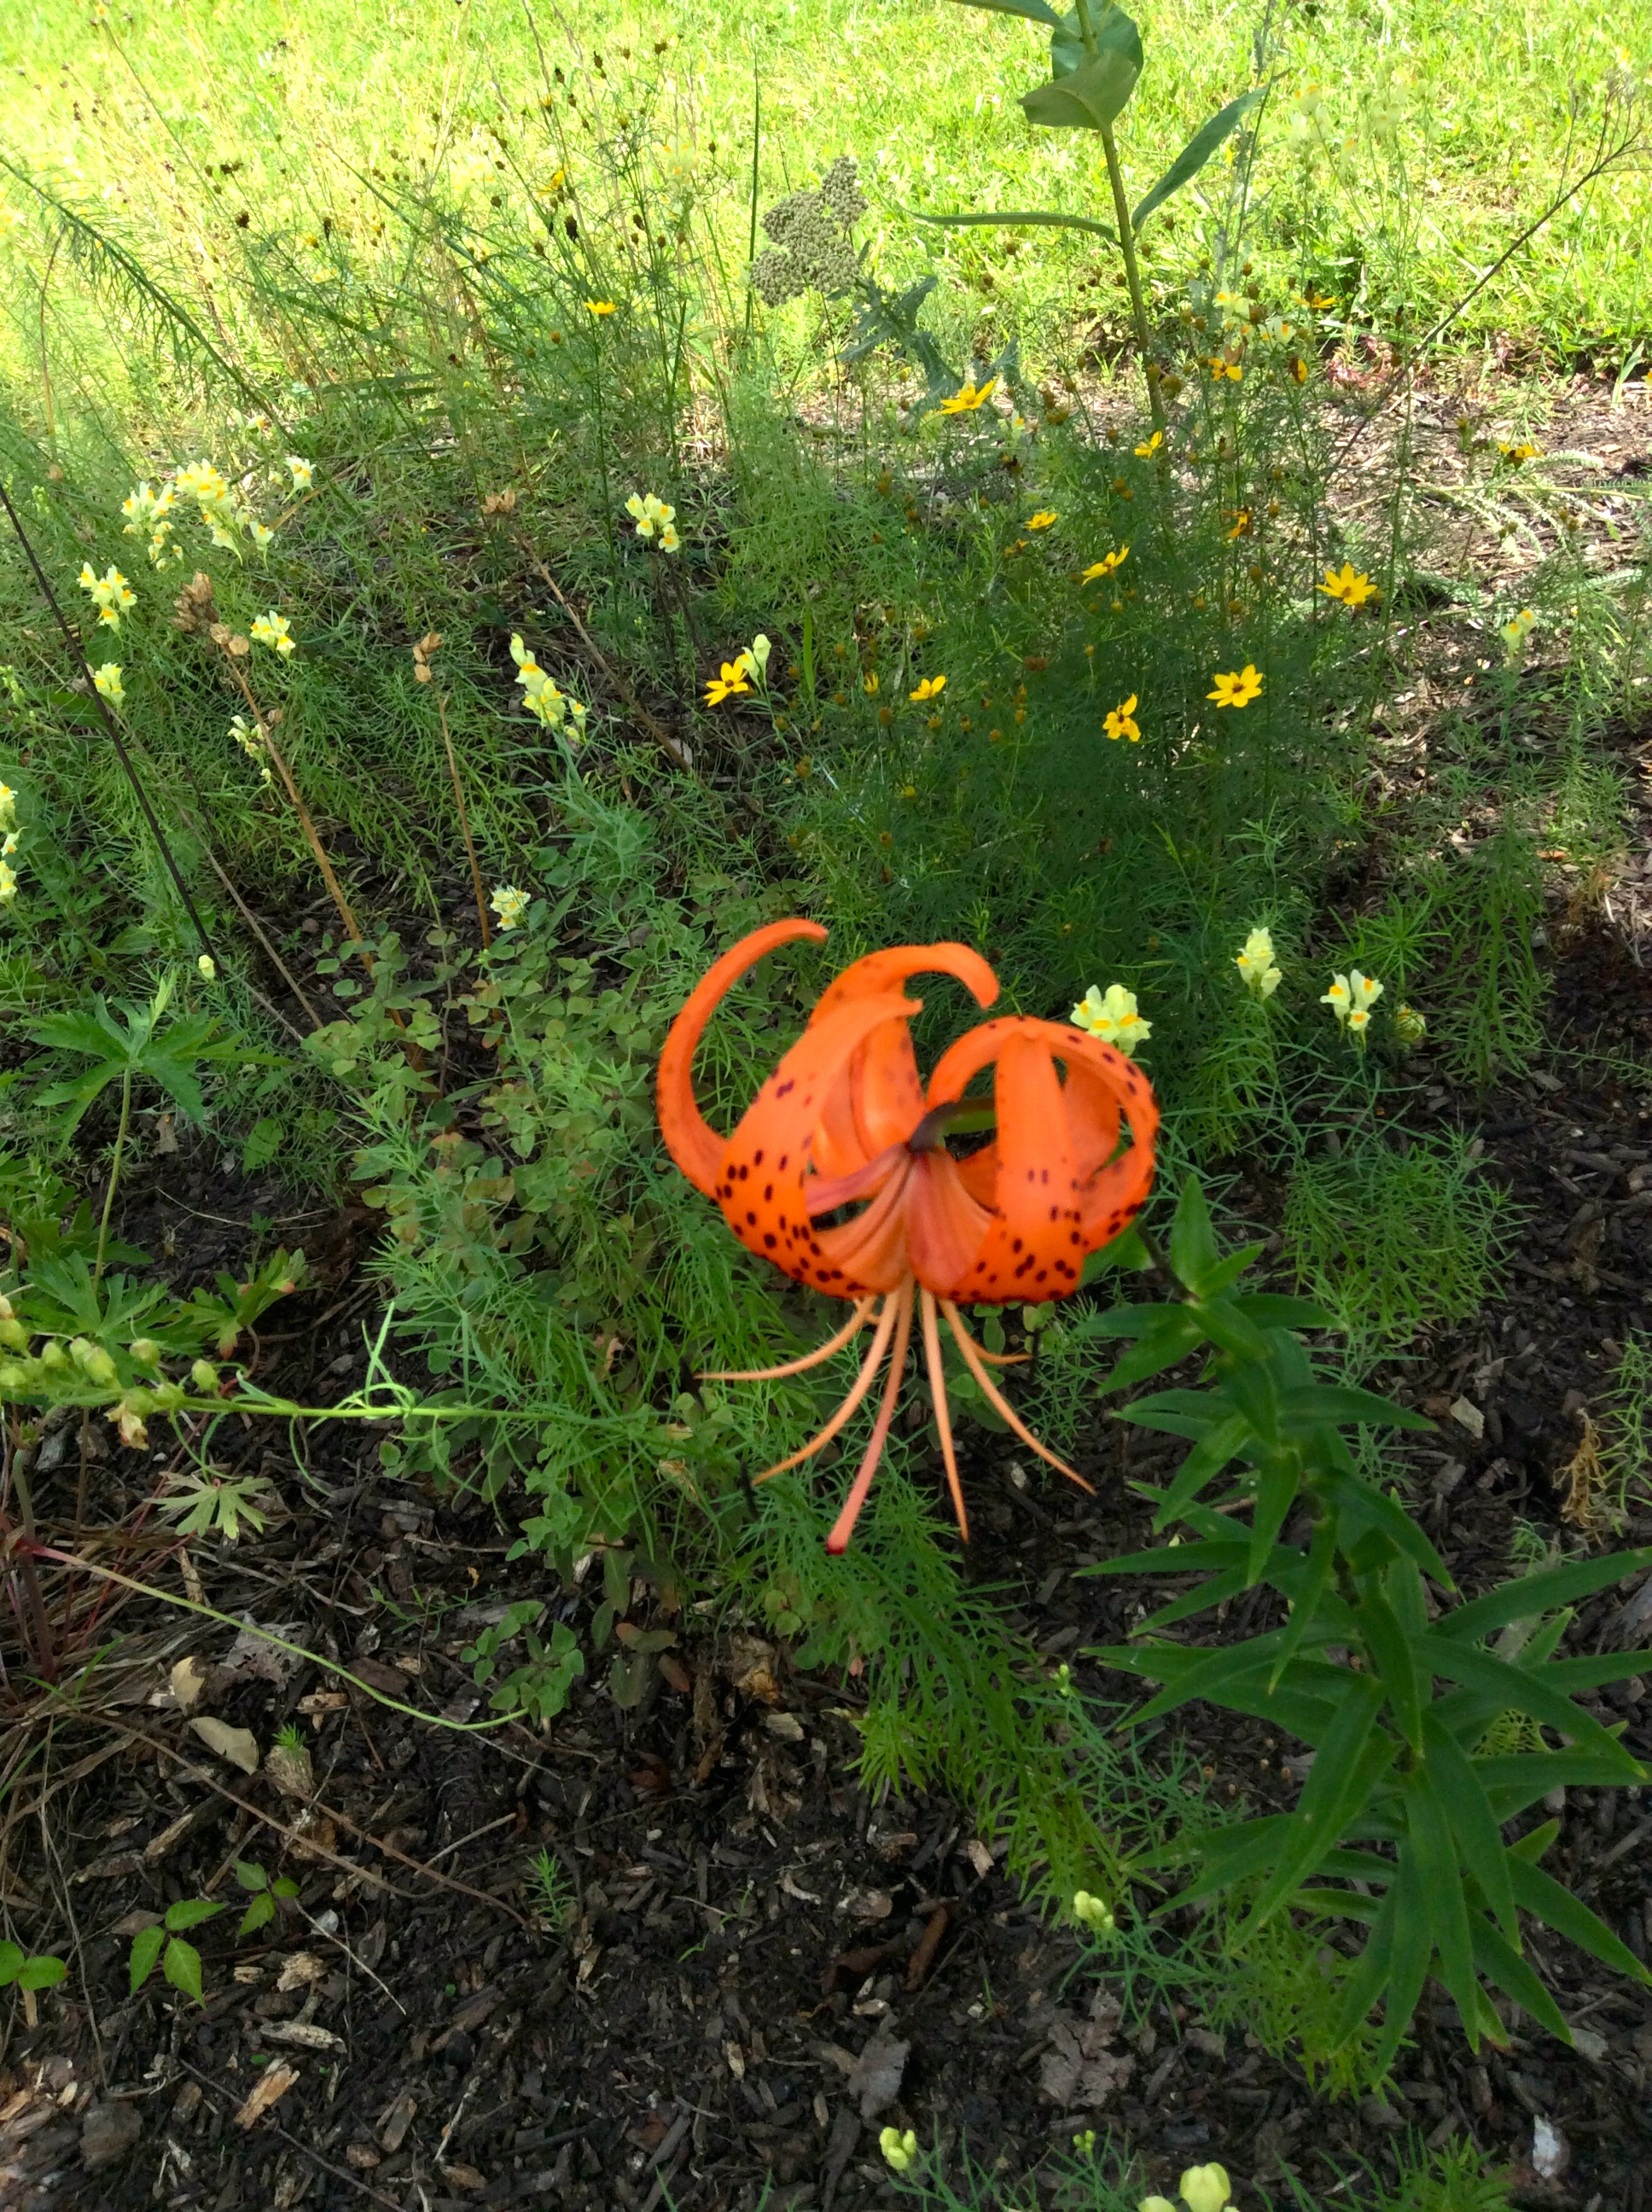 Tiger lily that appeared fromnowhere.